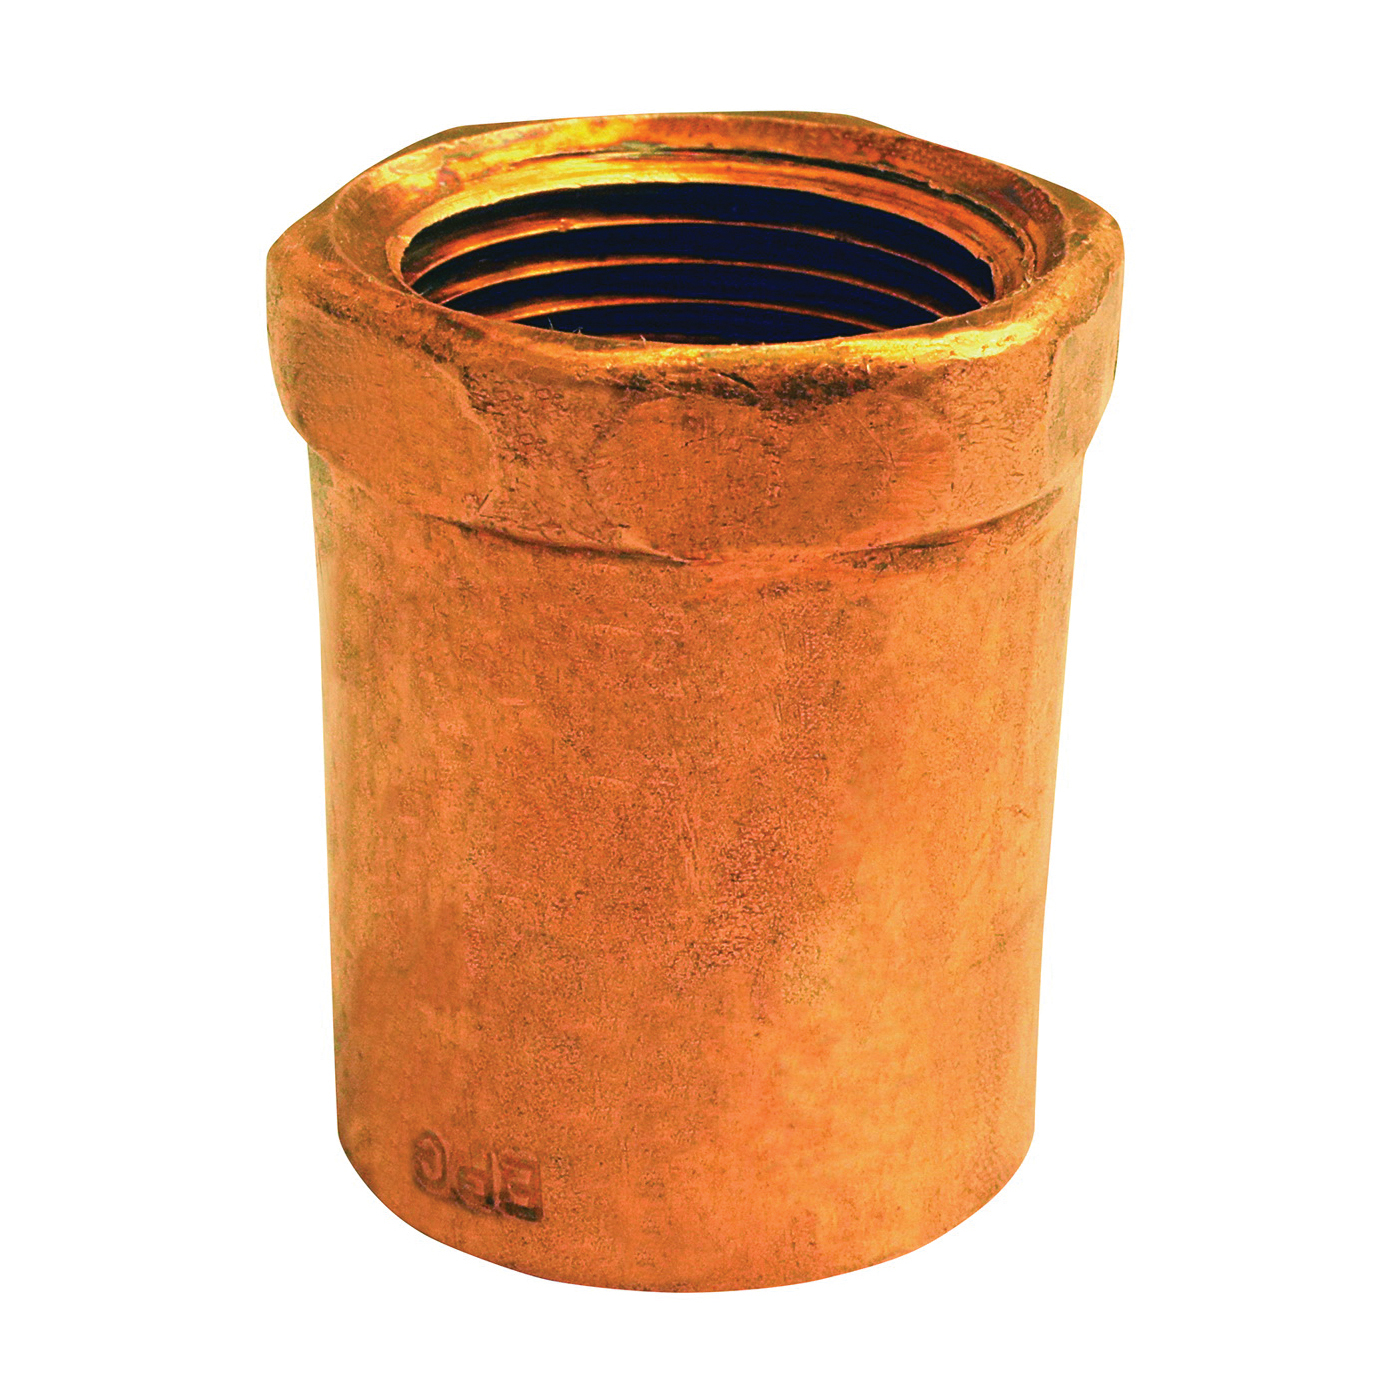 Picture of EPC 103 Series 30150 Pipe Adapter, 3/4 in, Sweat x FNPT, Copper